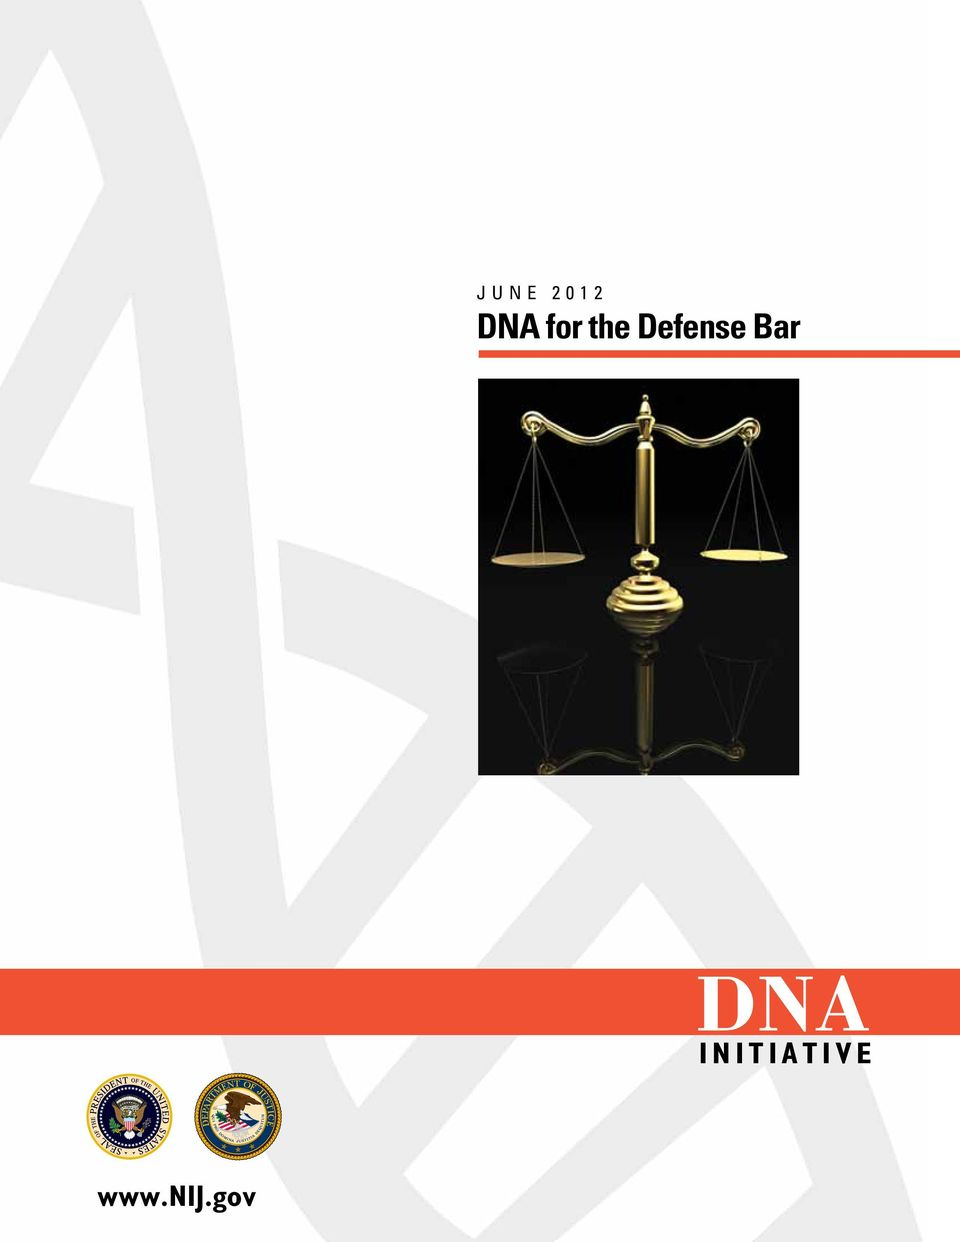 Defense Bar DNA I